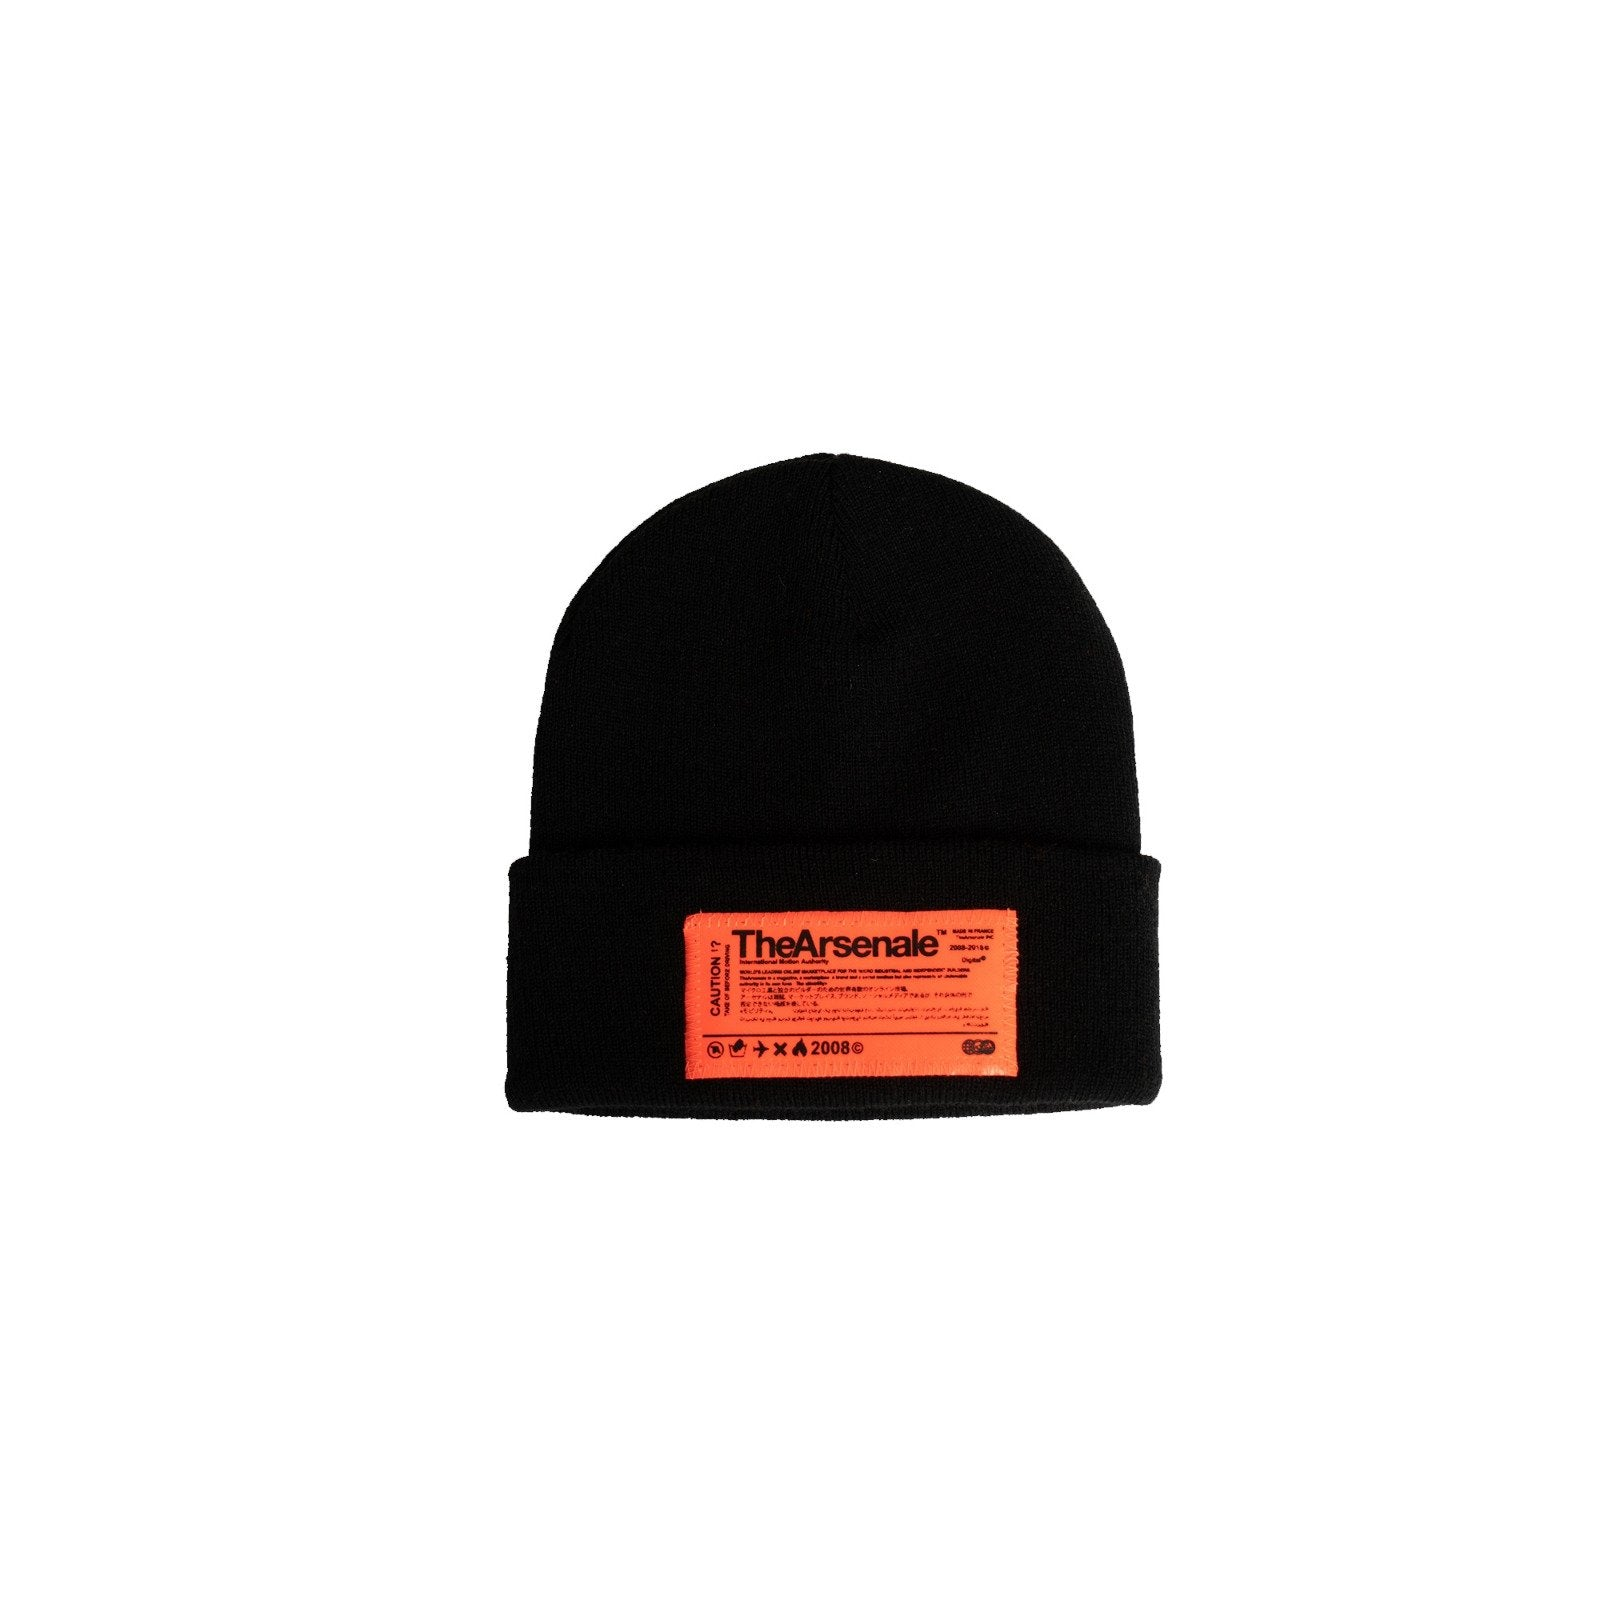 TheArsenale Technical Beanie #1